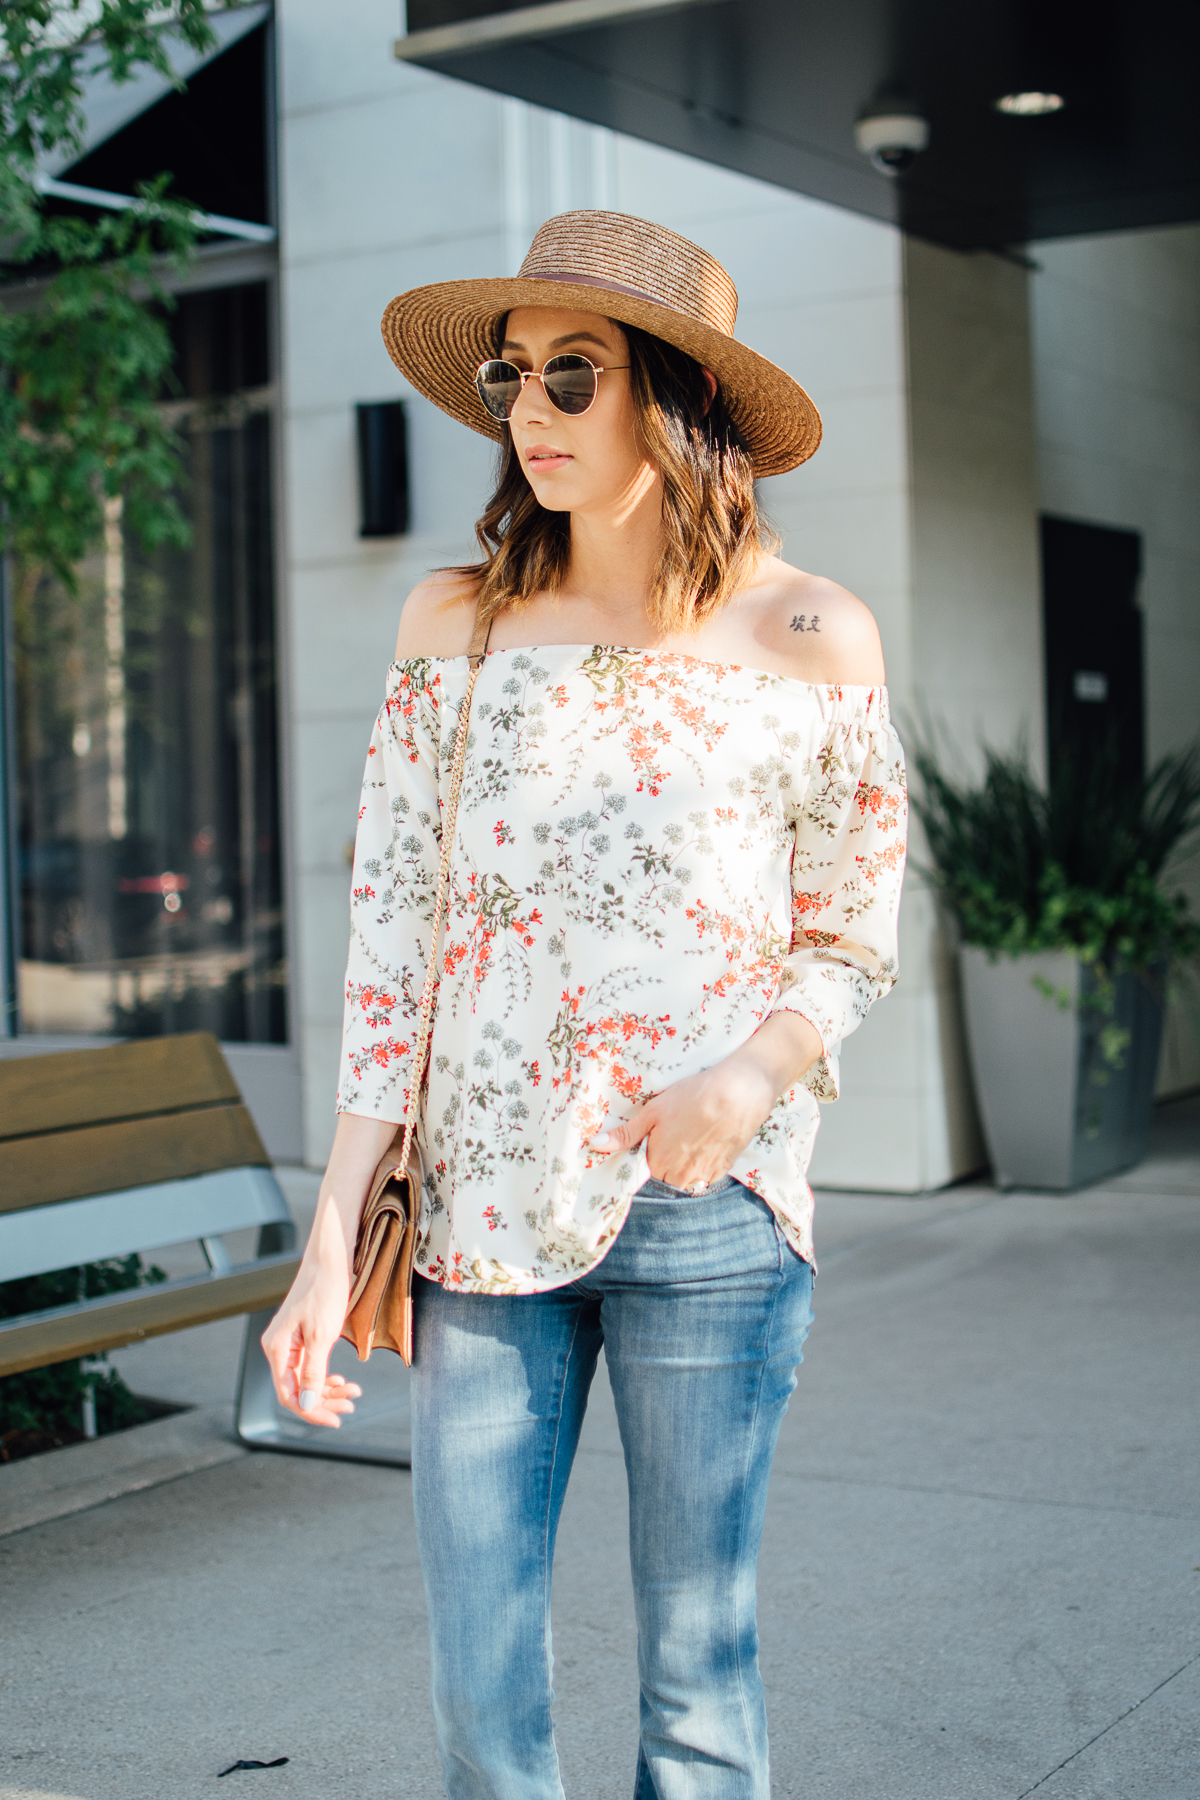 off-the-shoulder-top outfit for fall